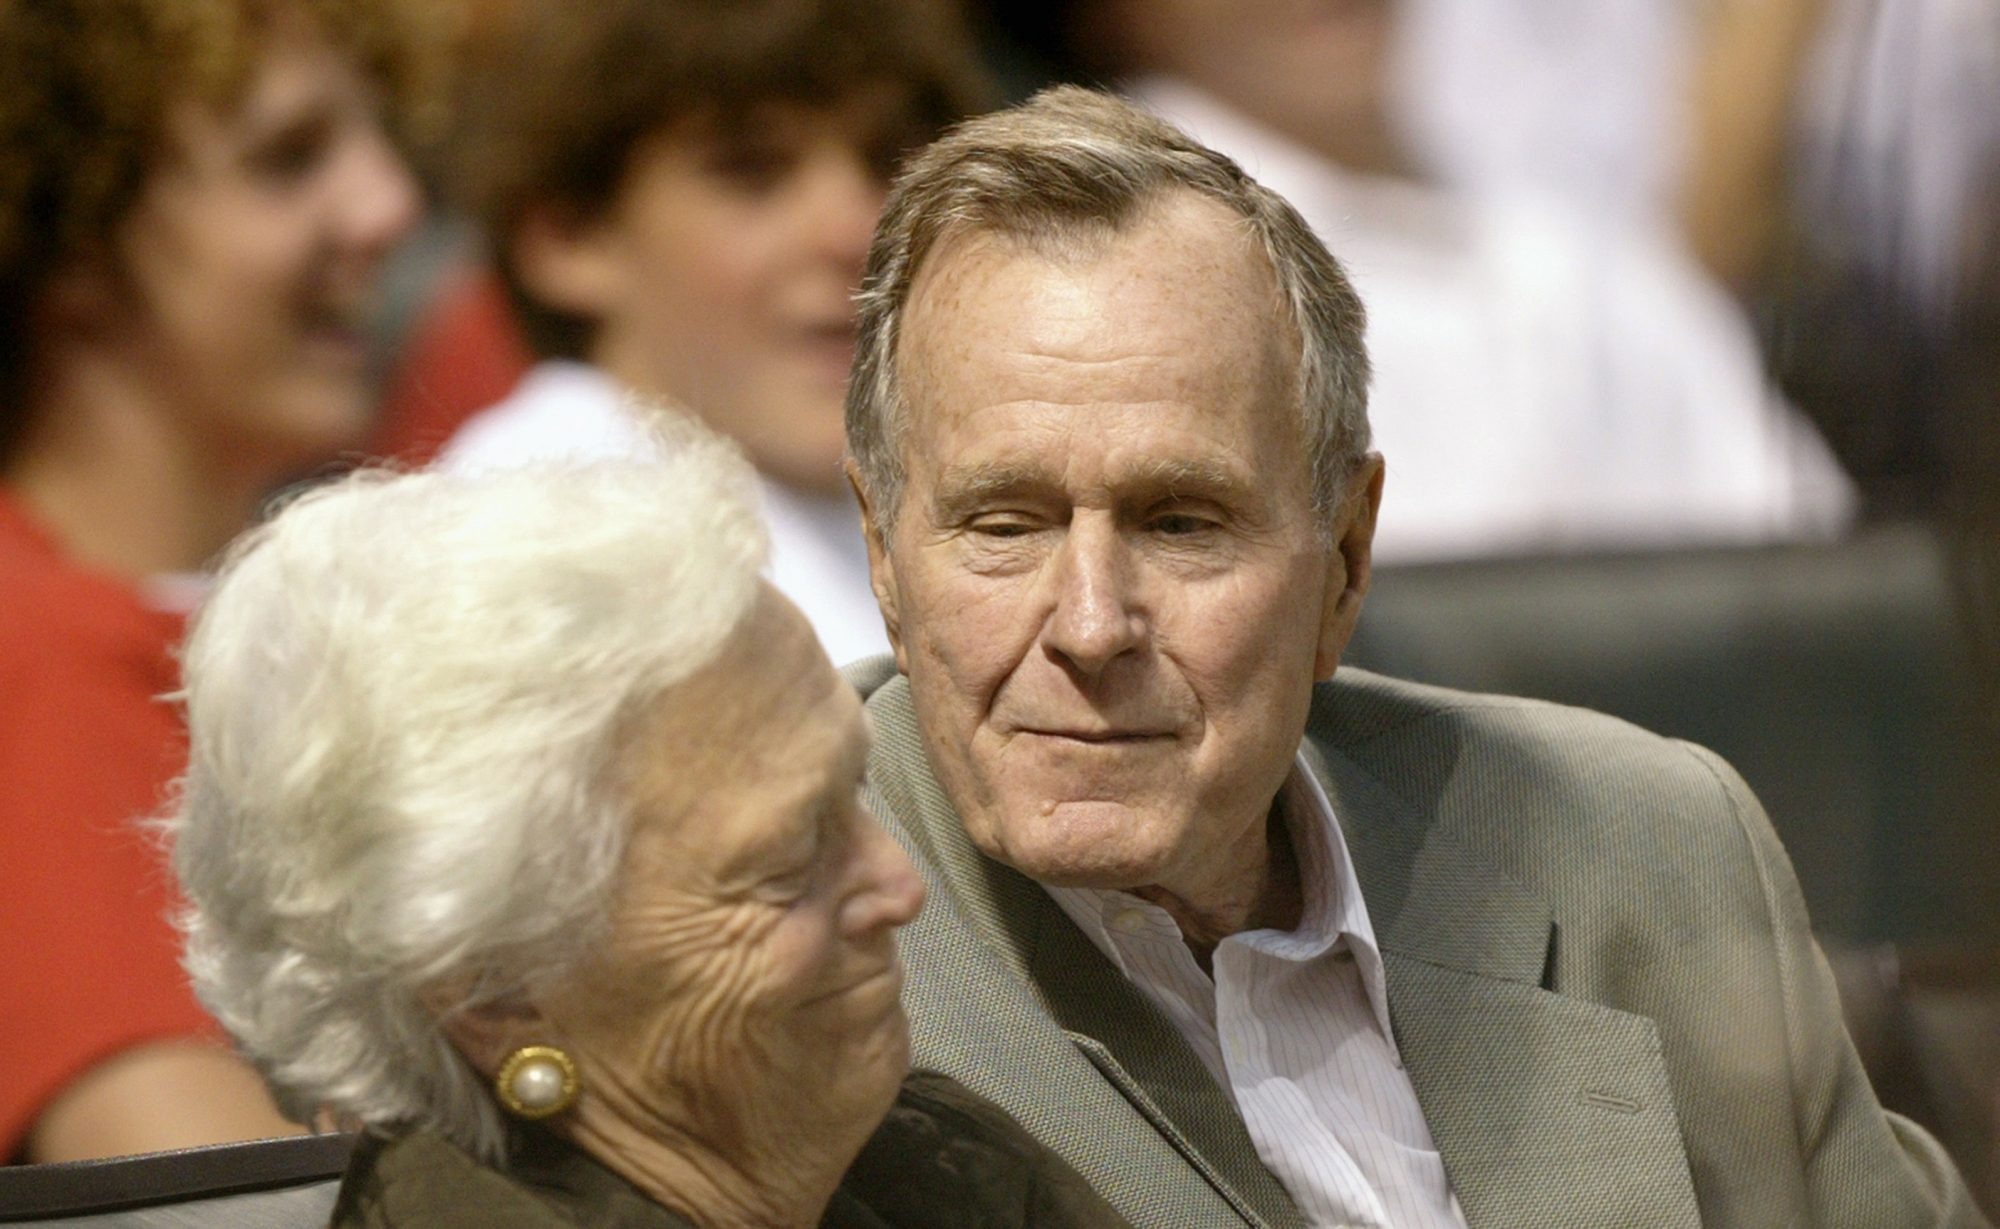 George HW Bush and Barbara Bush at Astros Game